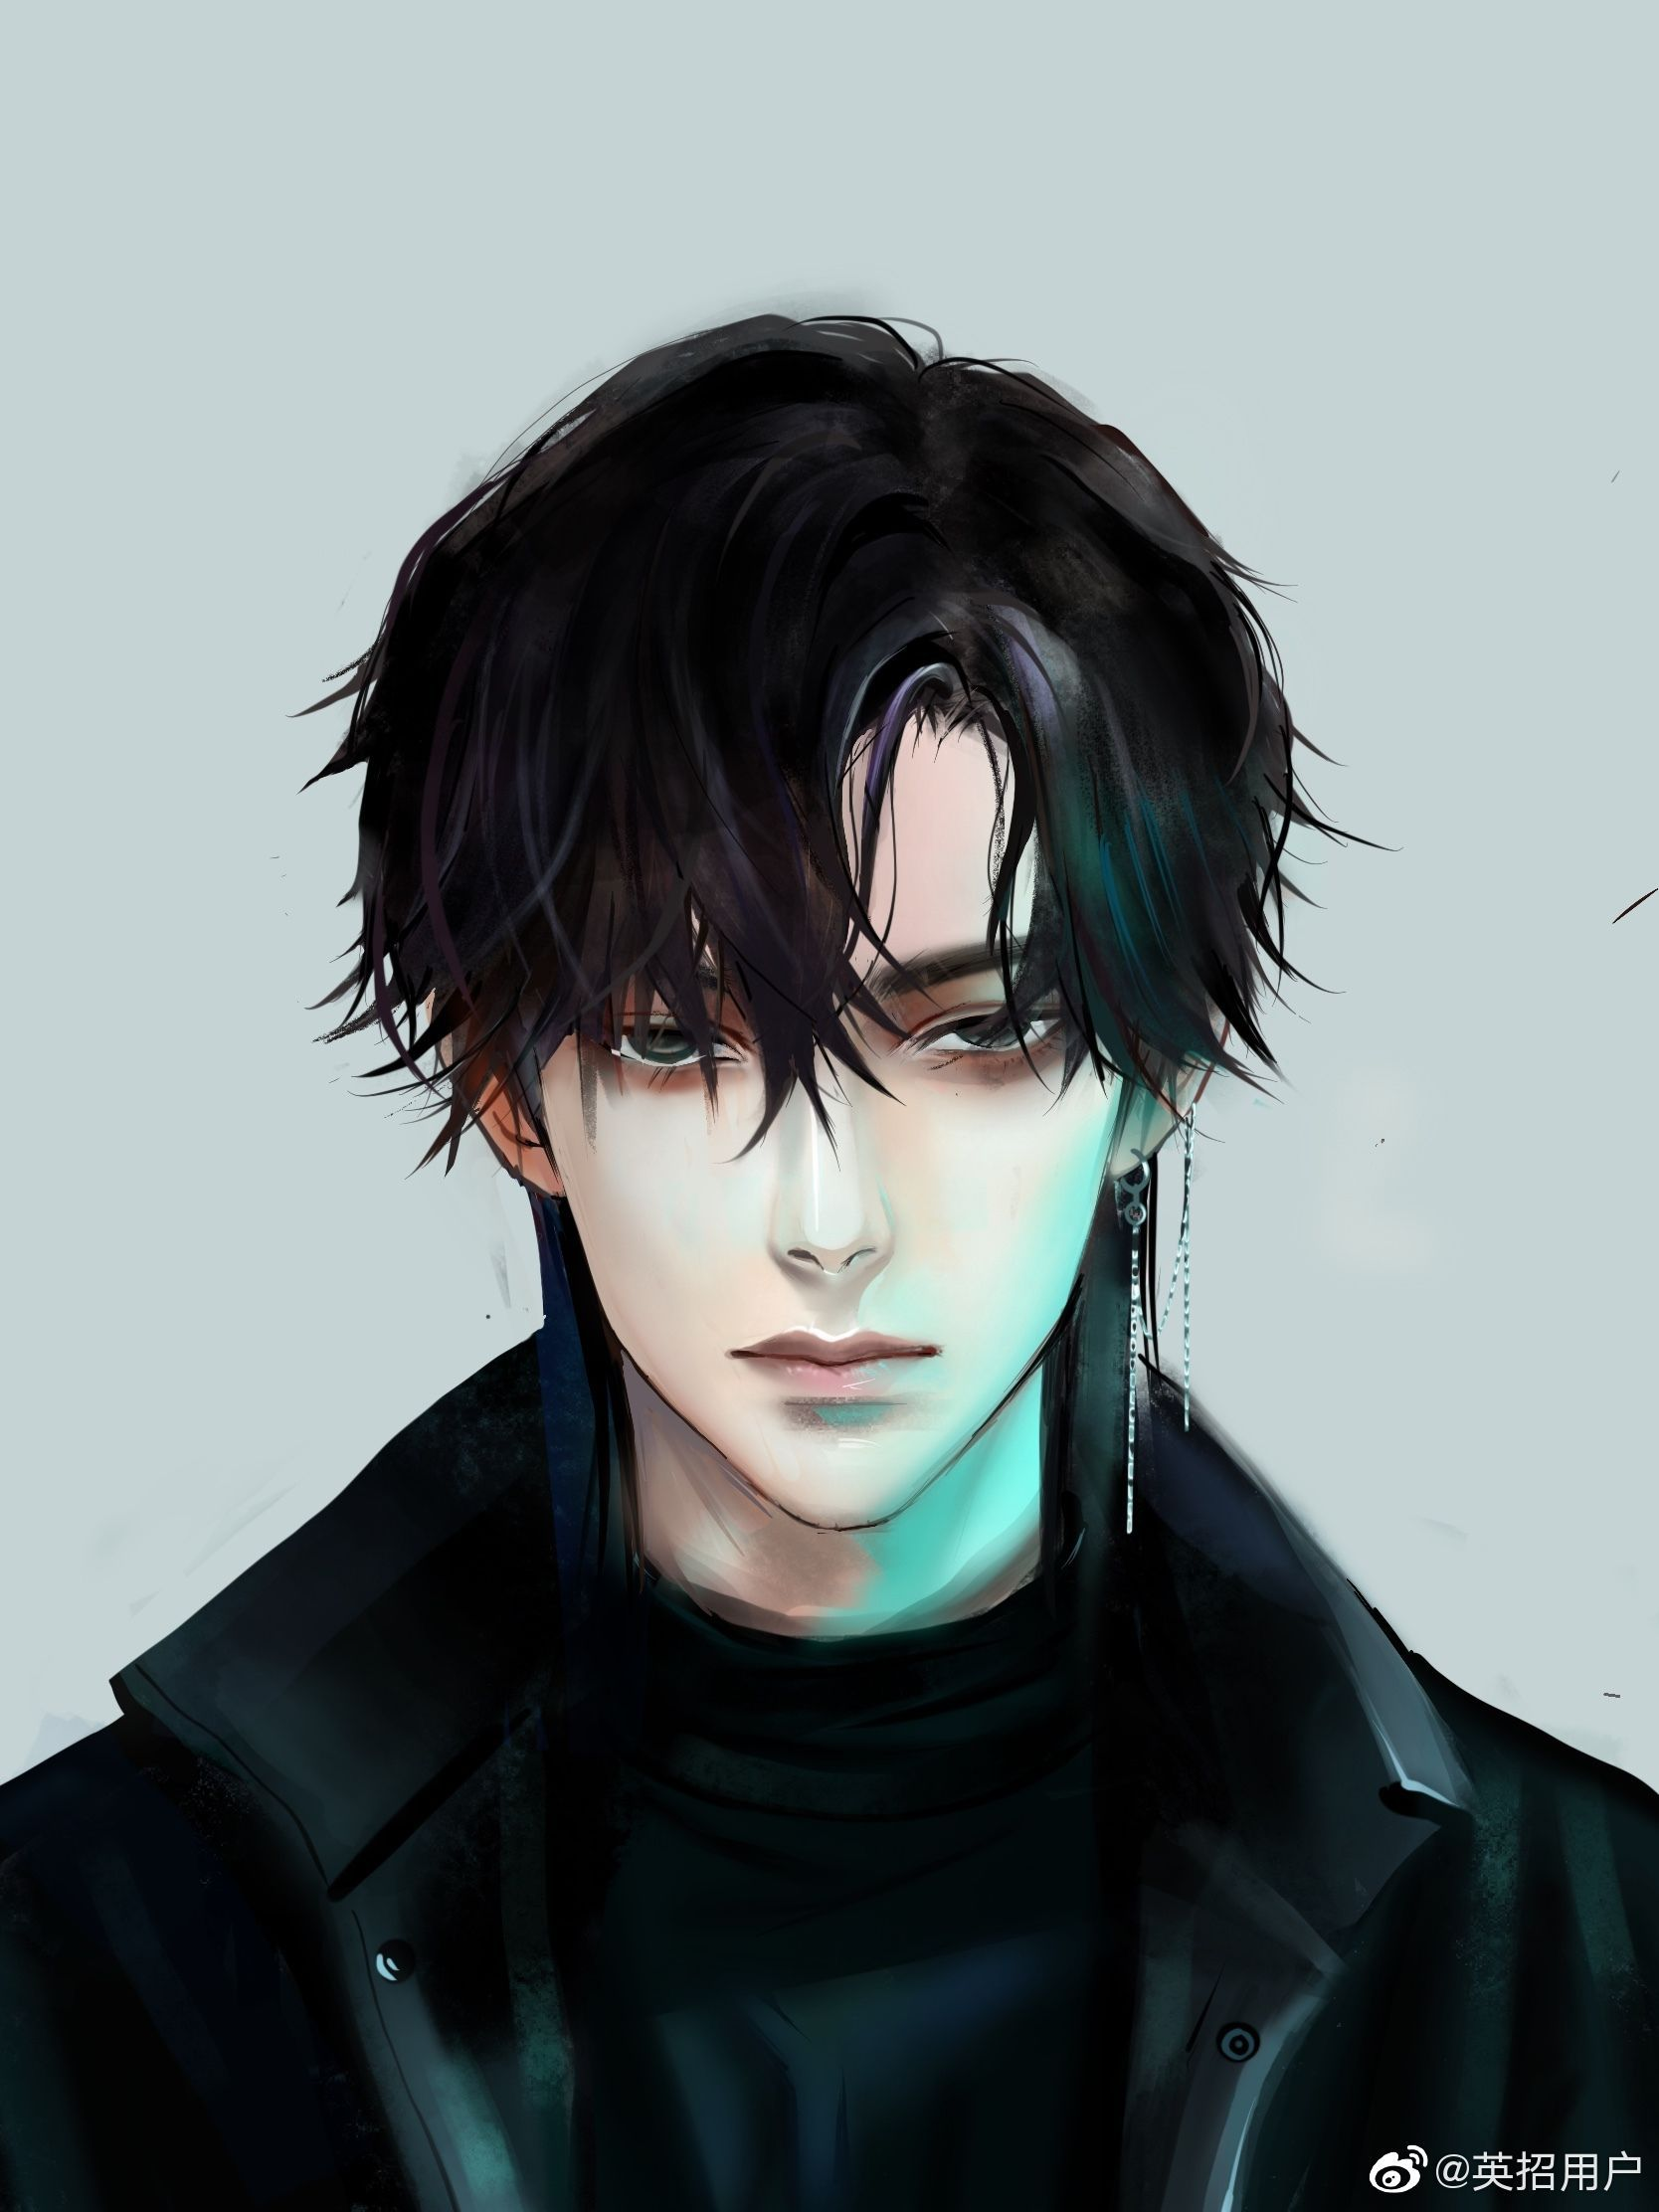 Yibo Wang Wallpaper Yibo Wang In 2020 Dark Anime Guys Anime Drawings Boy Anime Guys